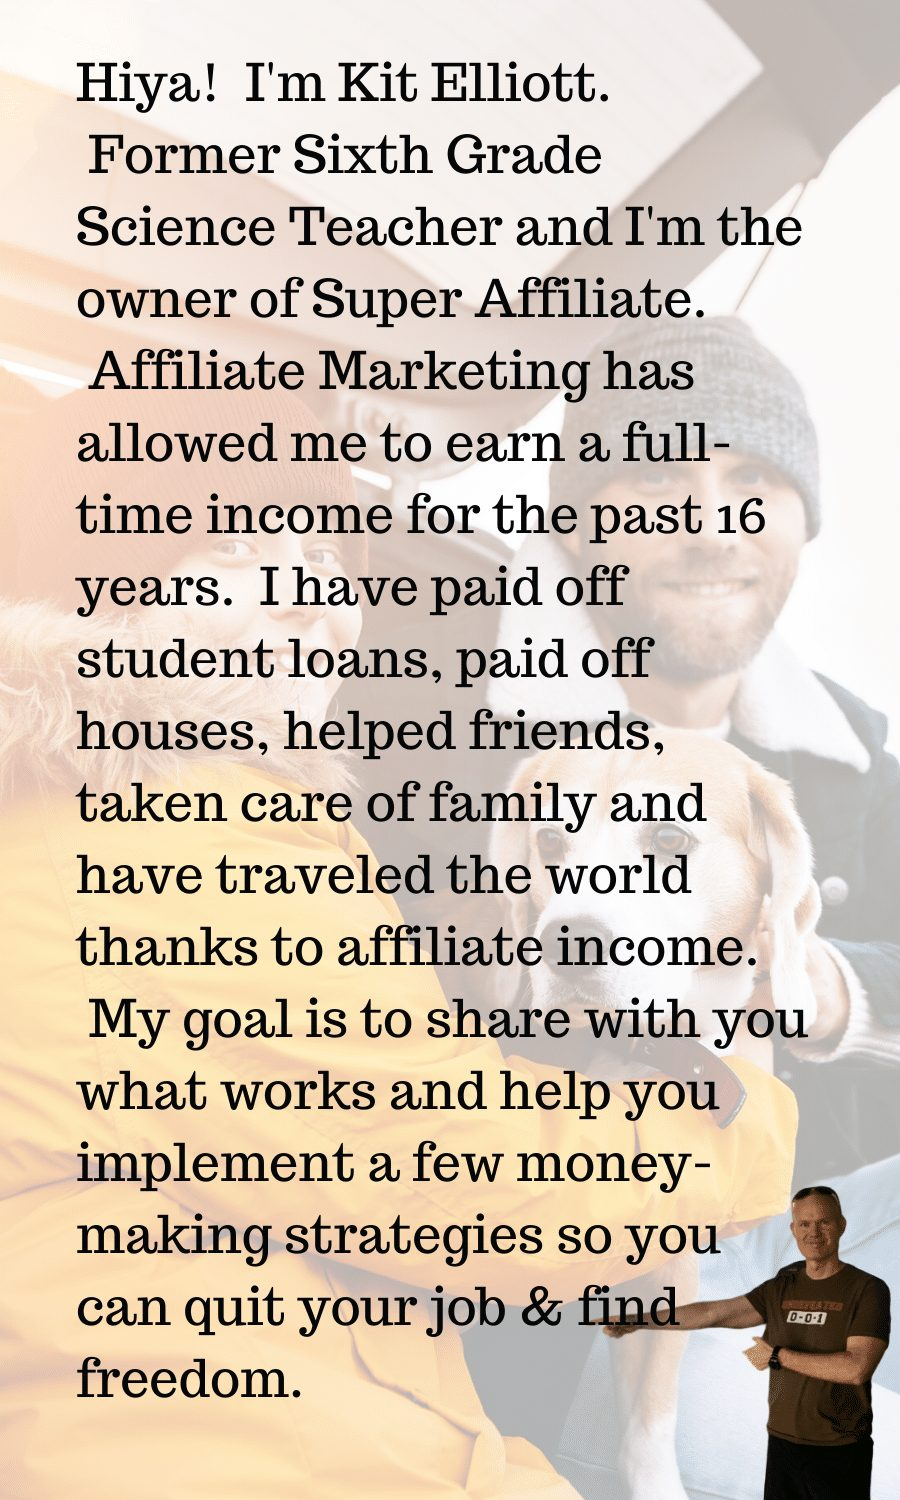 Welcome to the affiliate marketing training center.